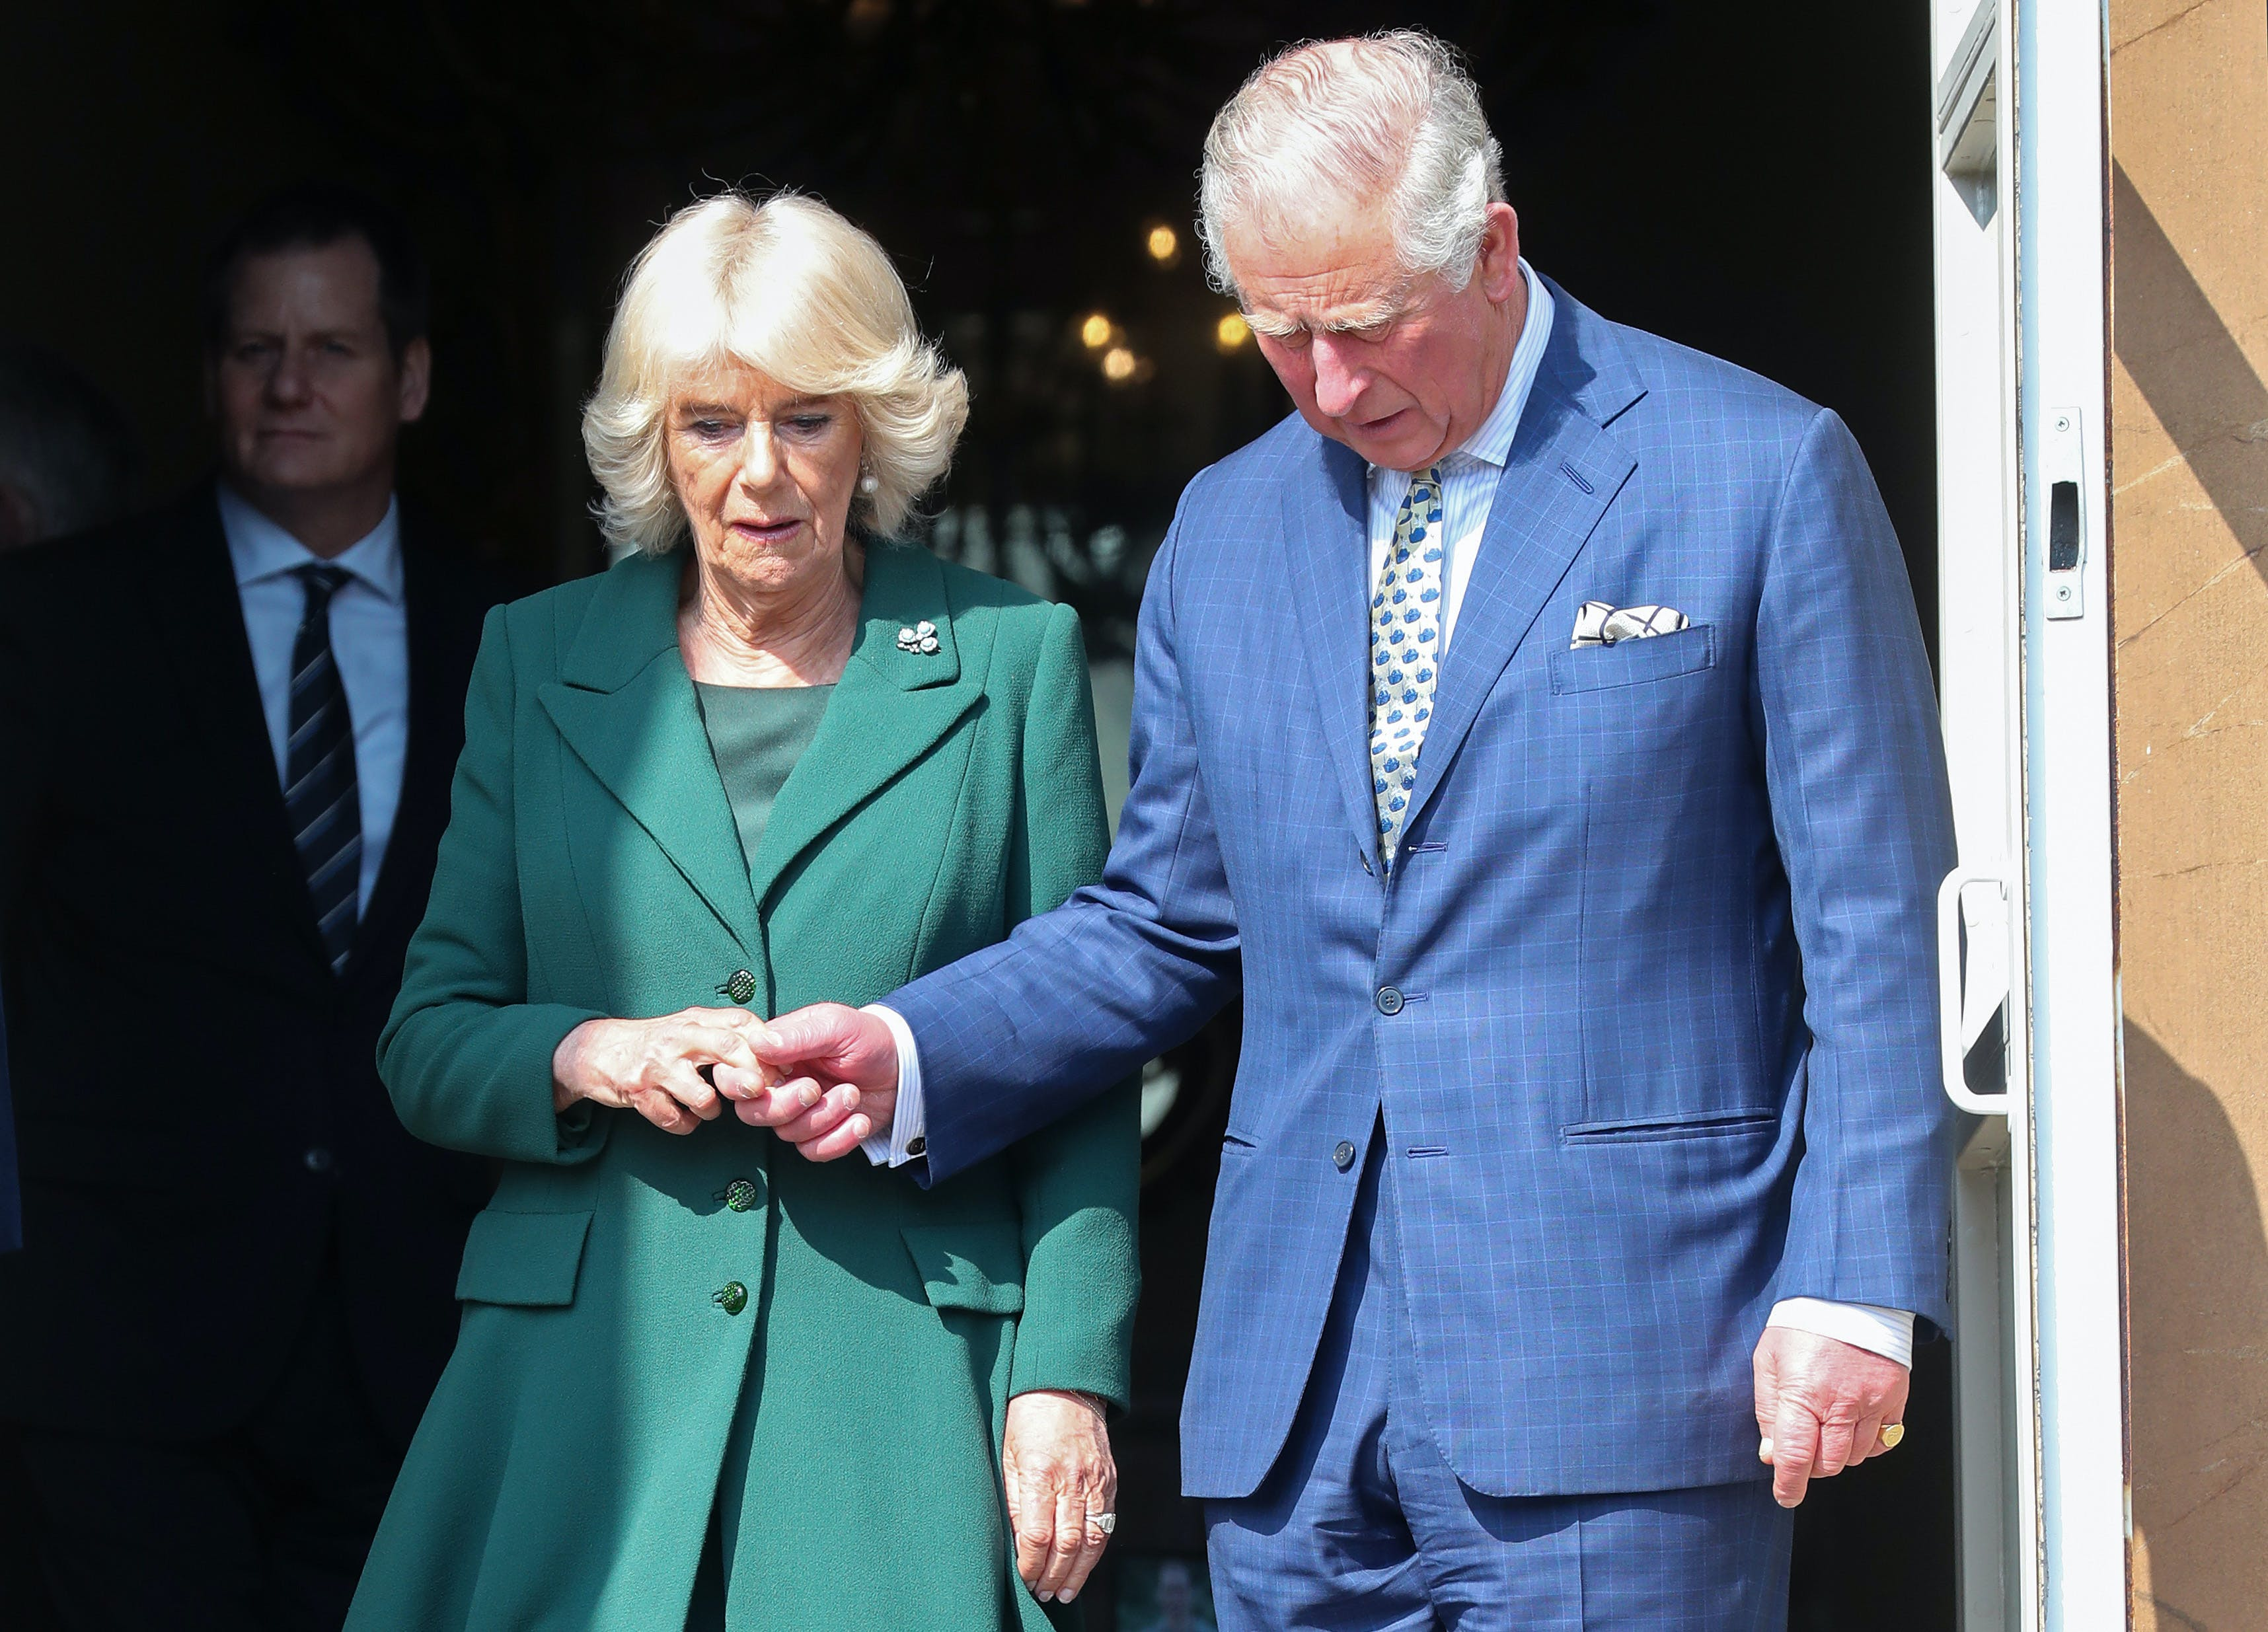 Cameras Caught Prince Charles & Camilla Parker Bowles Sneaking in a Little PDA on Their 14th Wedding Anniversary